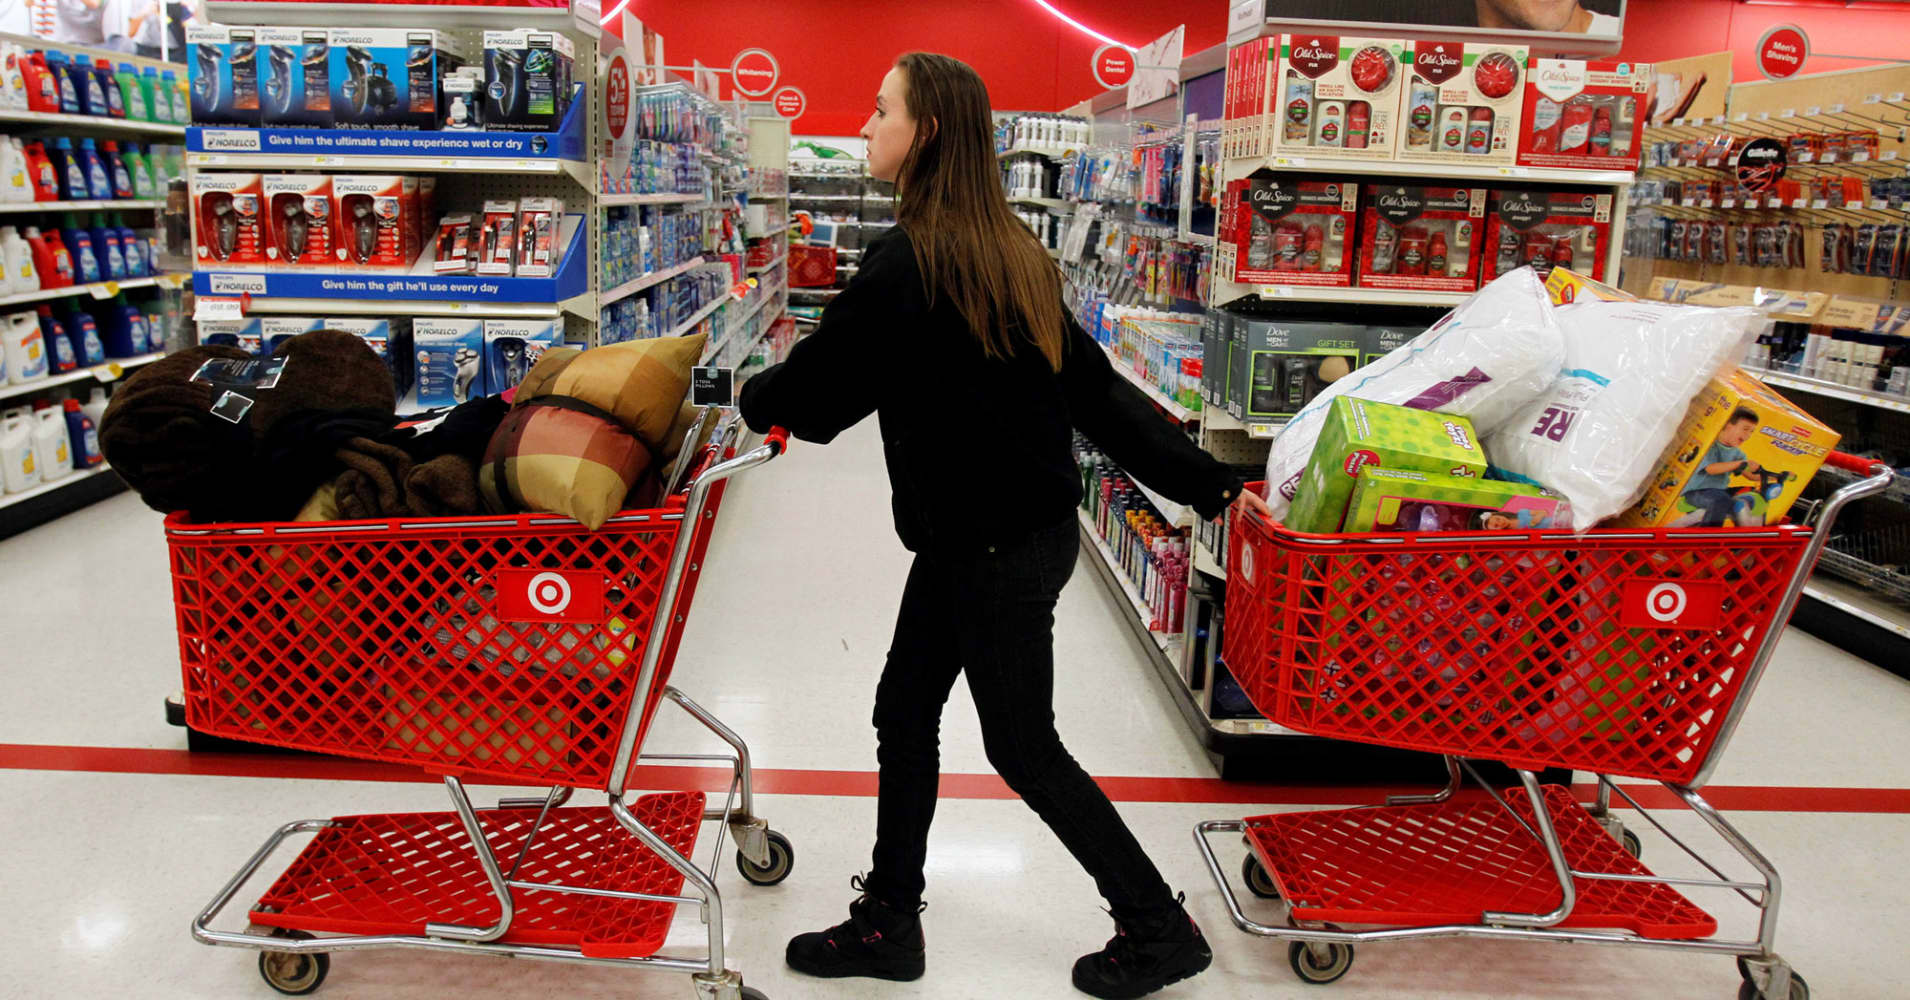 A woman pulls shopping carts through the aisle of a Target store in Torrington, Connecticut.